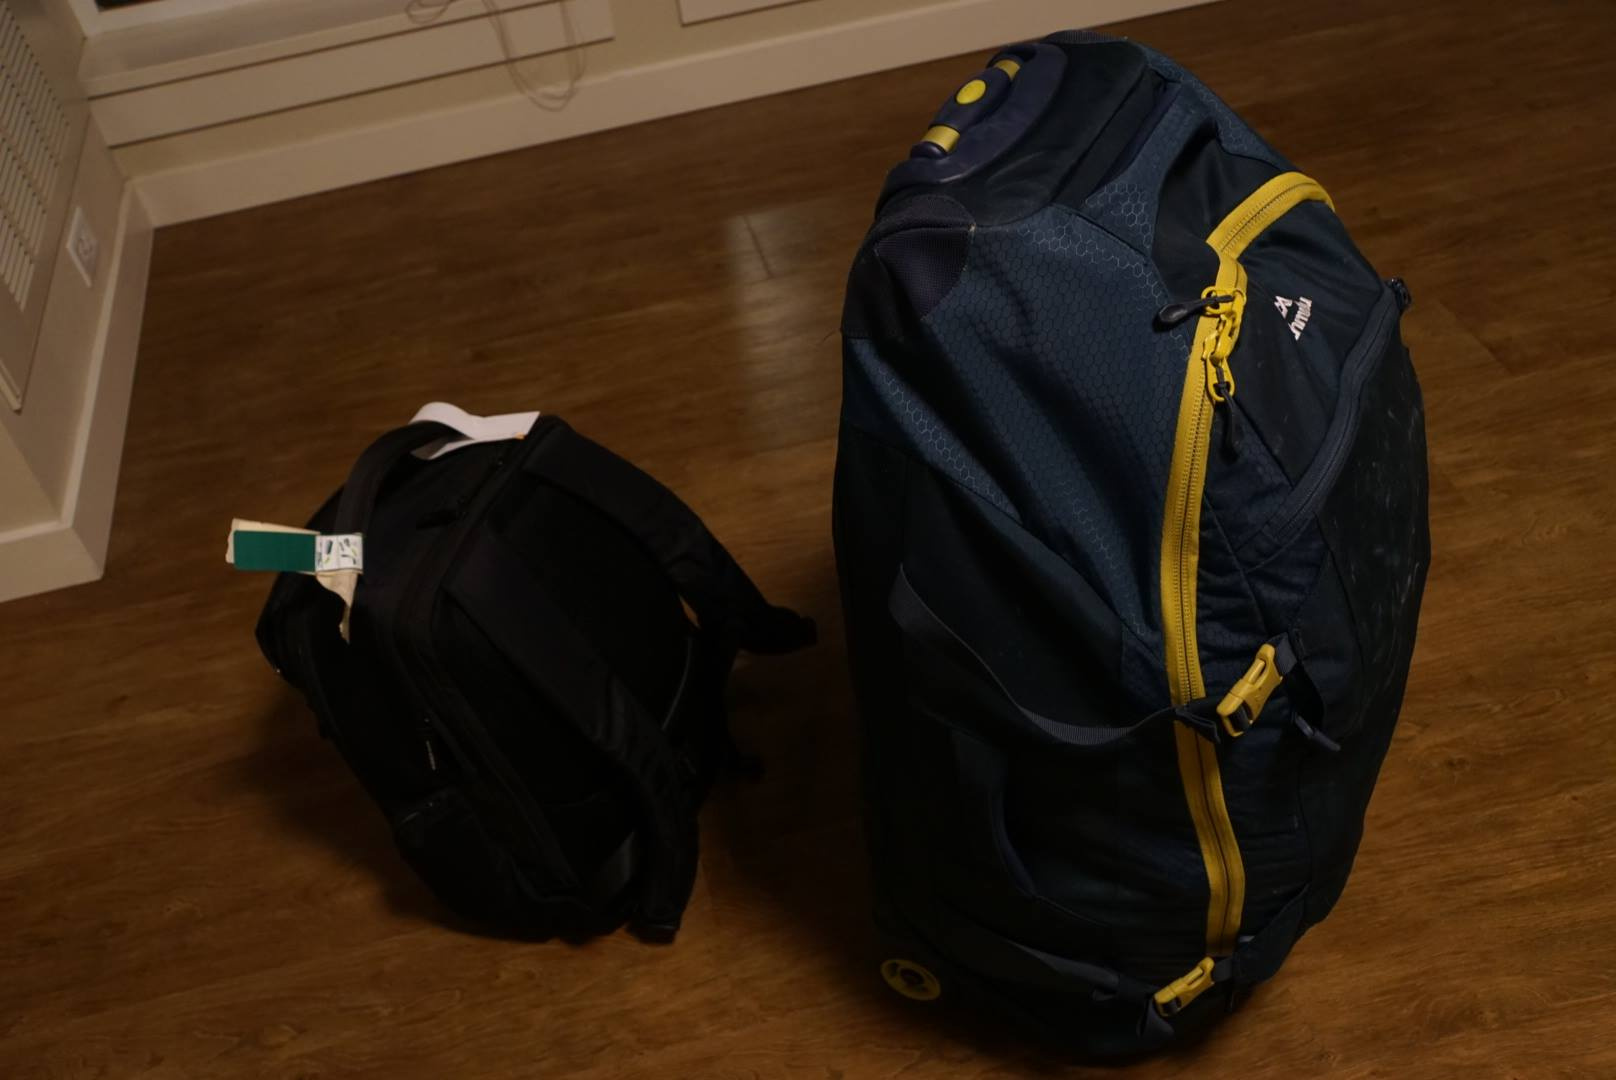 Two bags that I lived out of for ten months